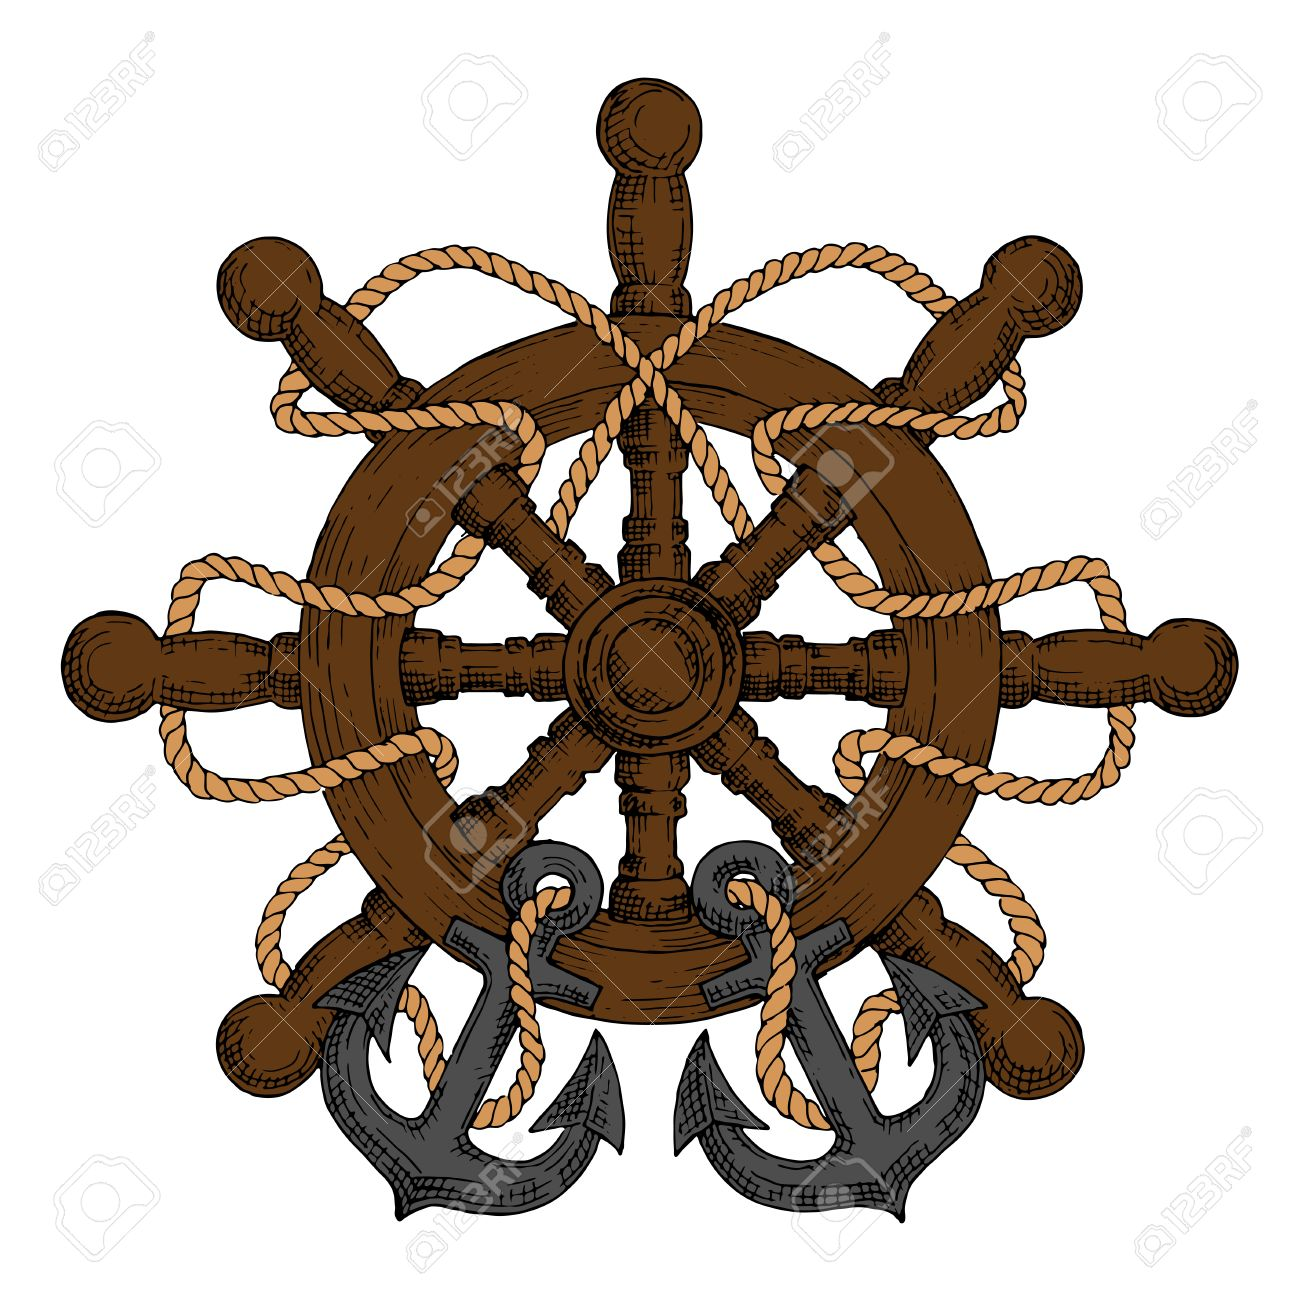 Old wooden ship helm with carved spokes and handles decorated old wooden ship helm with carved spokes and handles decorated by rope and admiralty anchors buycottarizona